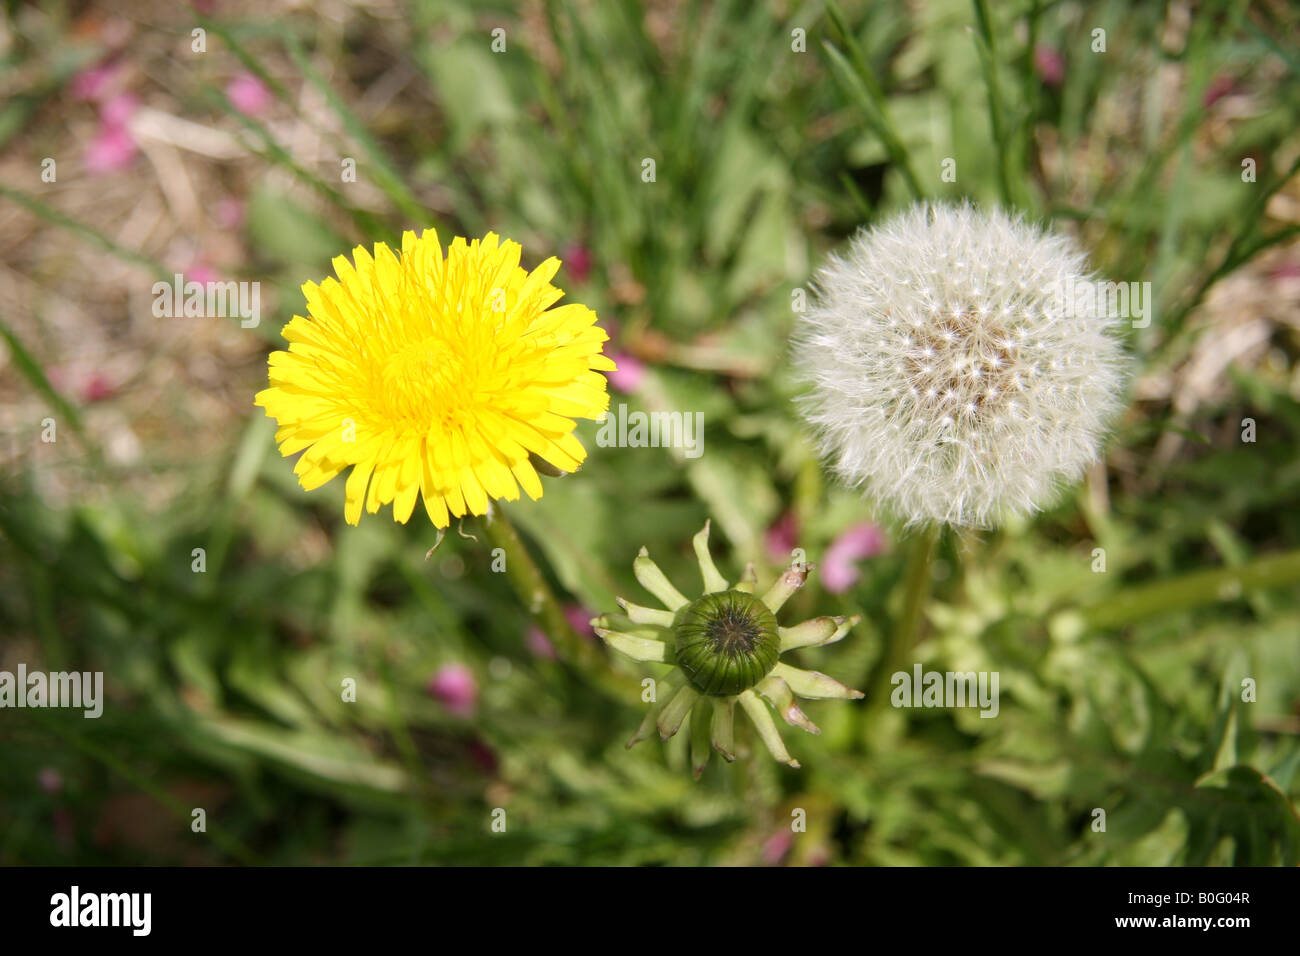 Dandelion flower clock and bud. The pink objects on the ground are petals from a flowering crab apple tree. - Stock Image